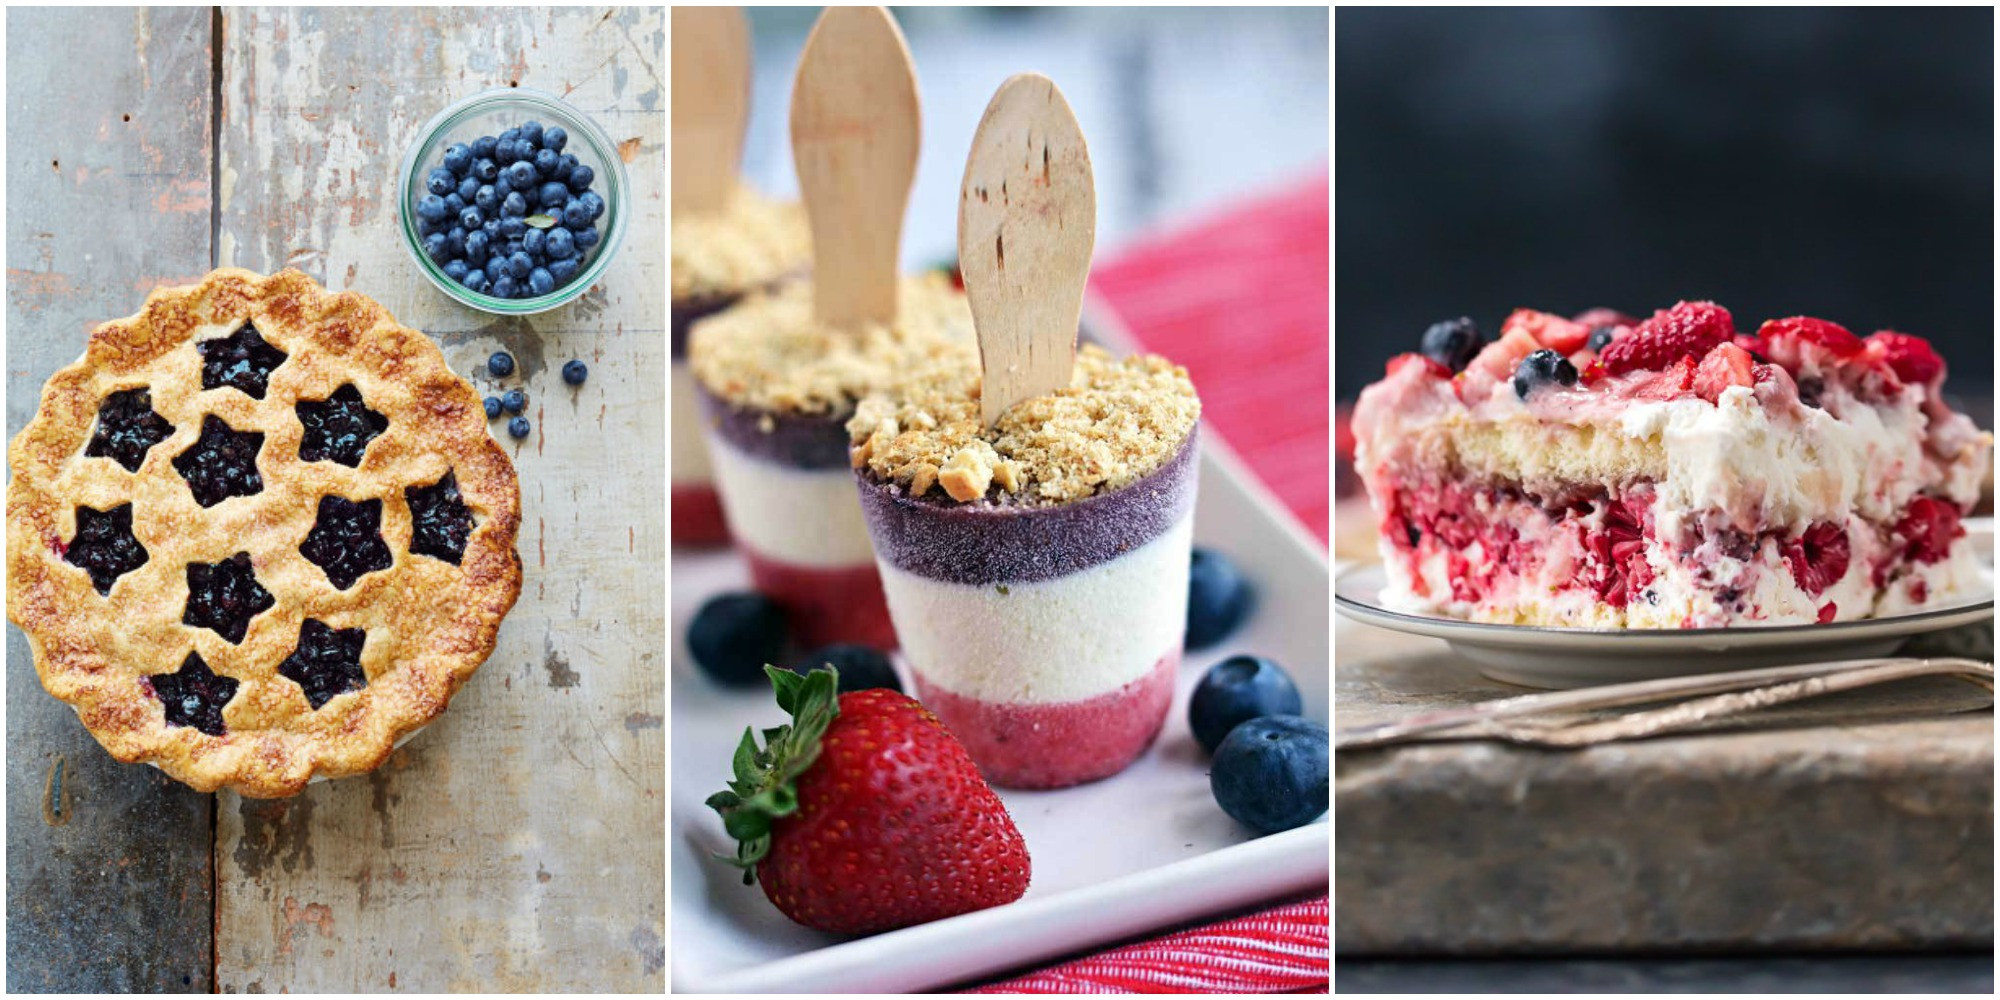 Memorial Day Desserts Recipes  20 Memorial Day Desserts Treats for a Memorial Day Party